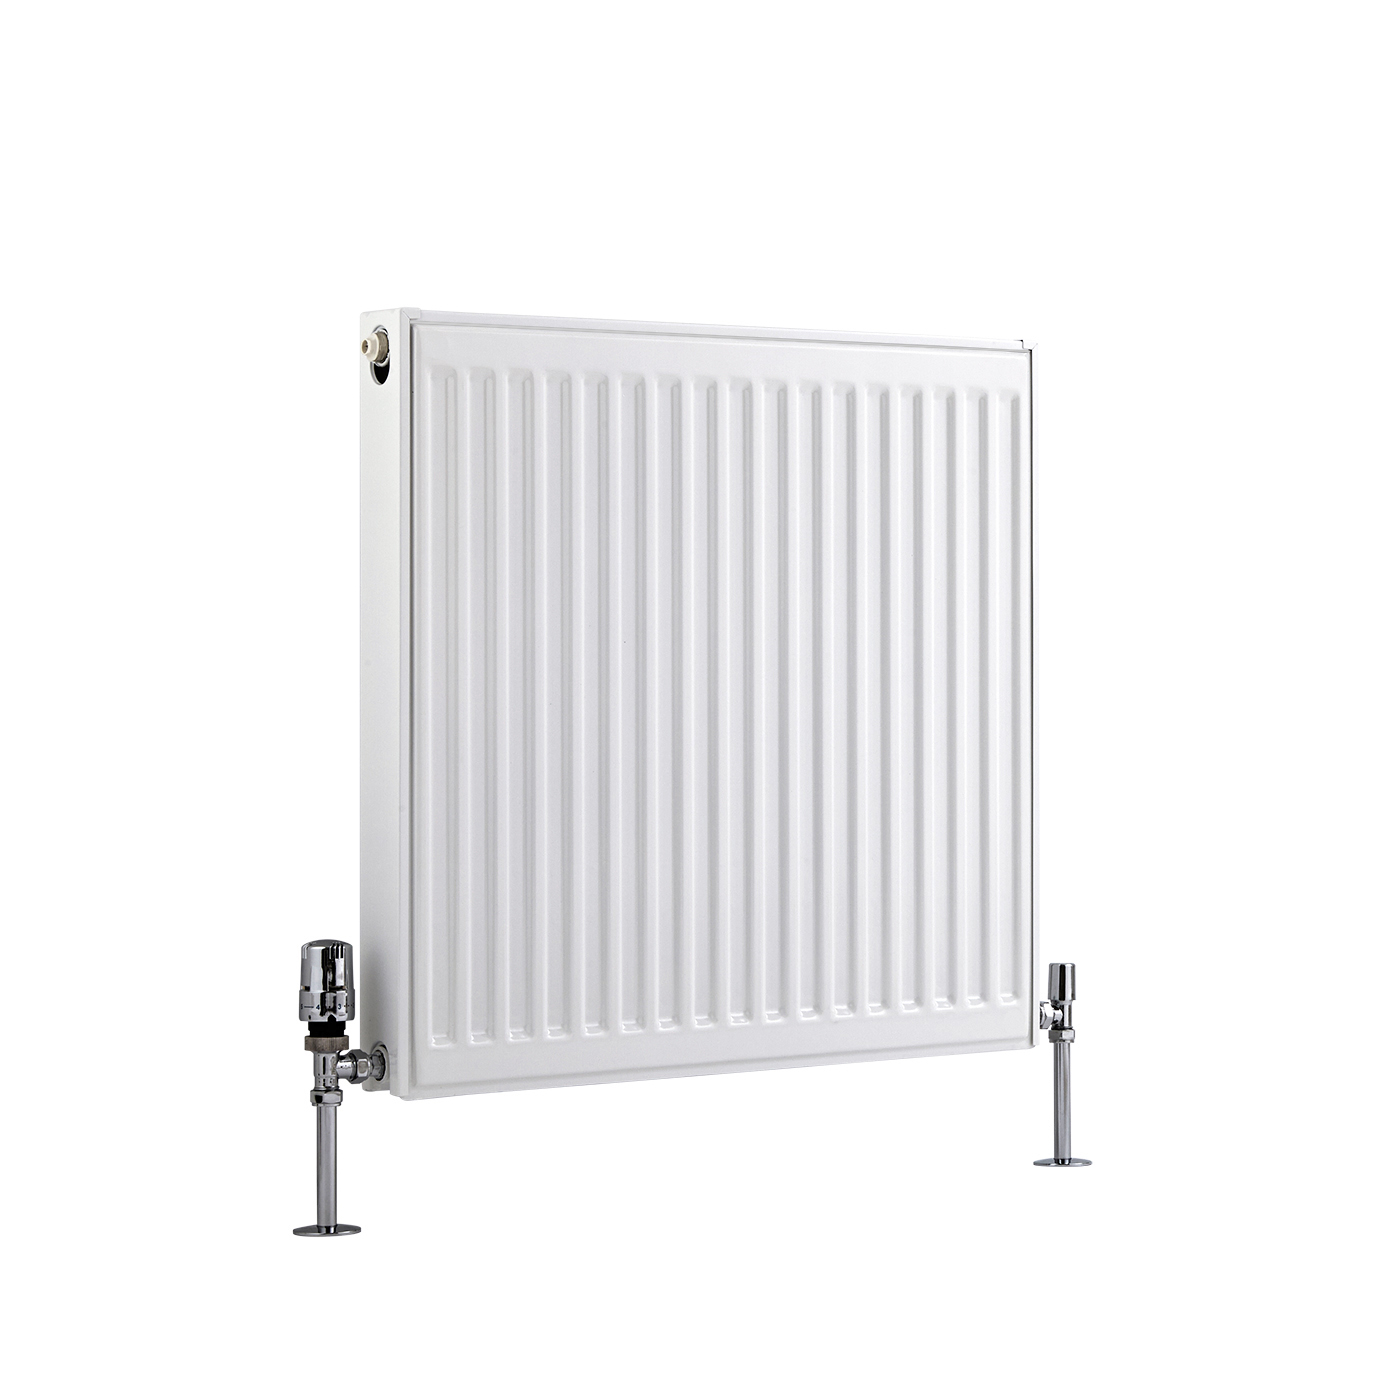 Radiador Convector Horizontal con Panel Doble Plus - Blanco - 600mm x 600mm x 73mm - 1019 Vatios - Eco